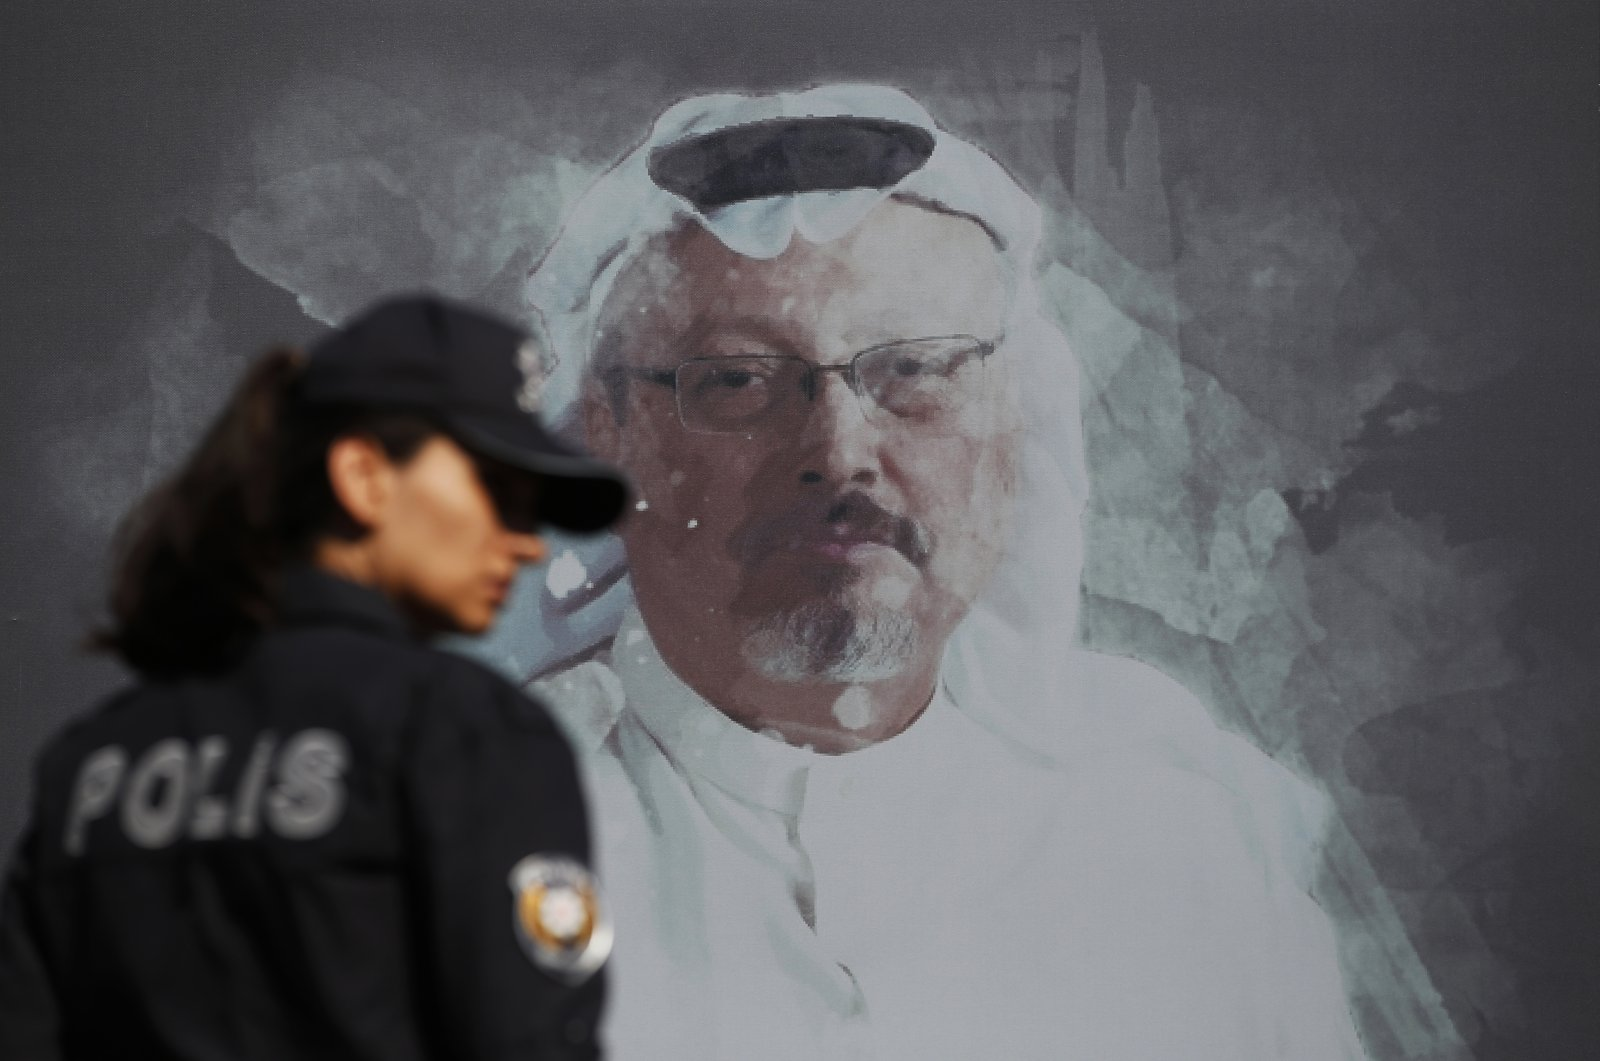 A Turkish police officer walks past a picture of slain Saudi journalist Jamal Khashoggi prior to a ceremony, near the Saudi Arabia consulate in Istanbul, marking the one-year anniversary of his death, Oct. 2, 2019. (AP Photo)